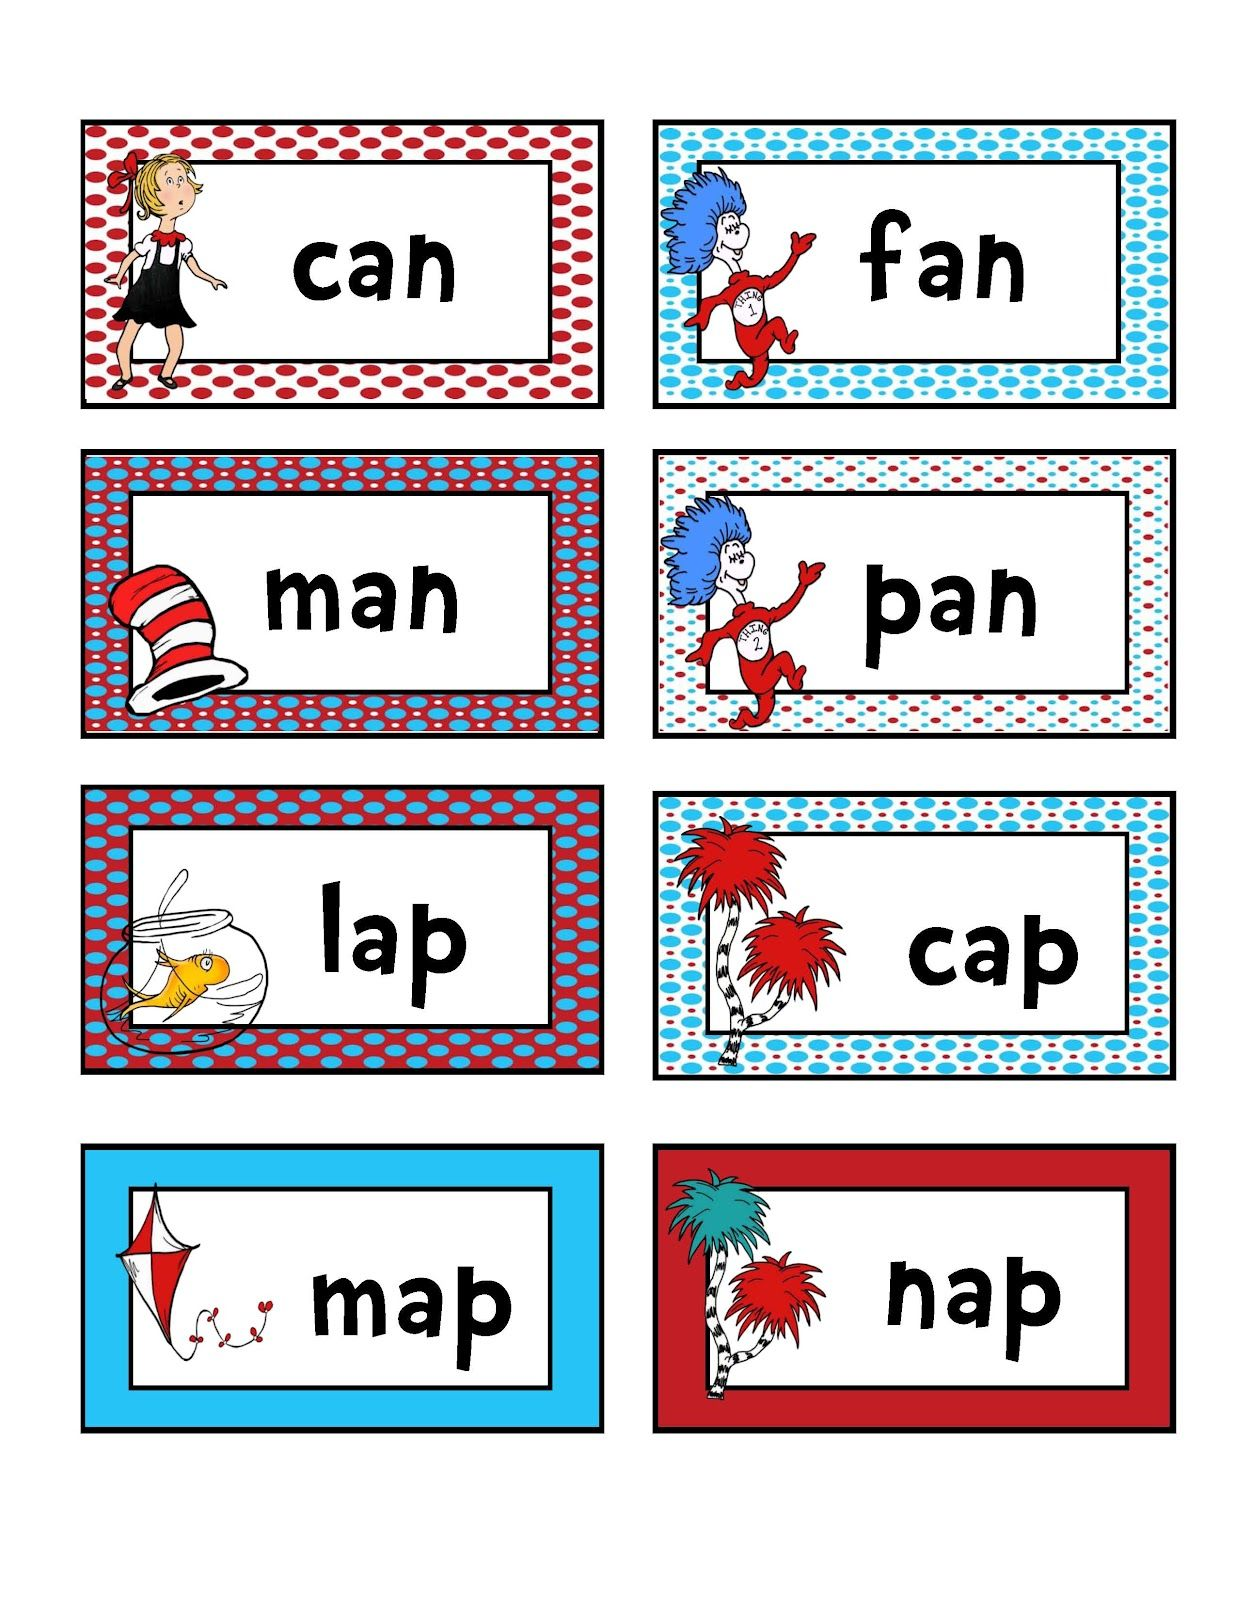 Worksheets Rhyme Words 41 best ideas about rhyming words on pinterest kindergarten worksheets activities for children and long vowels